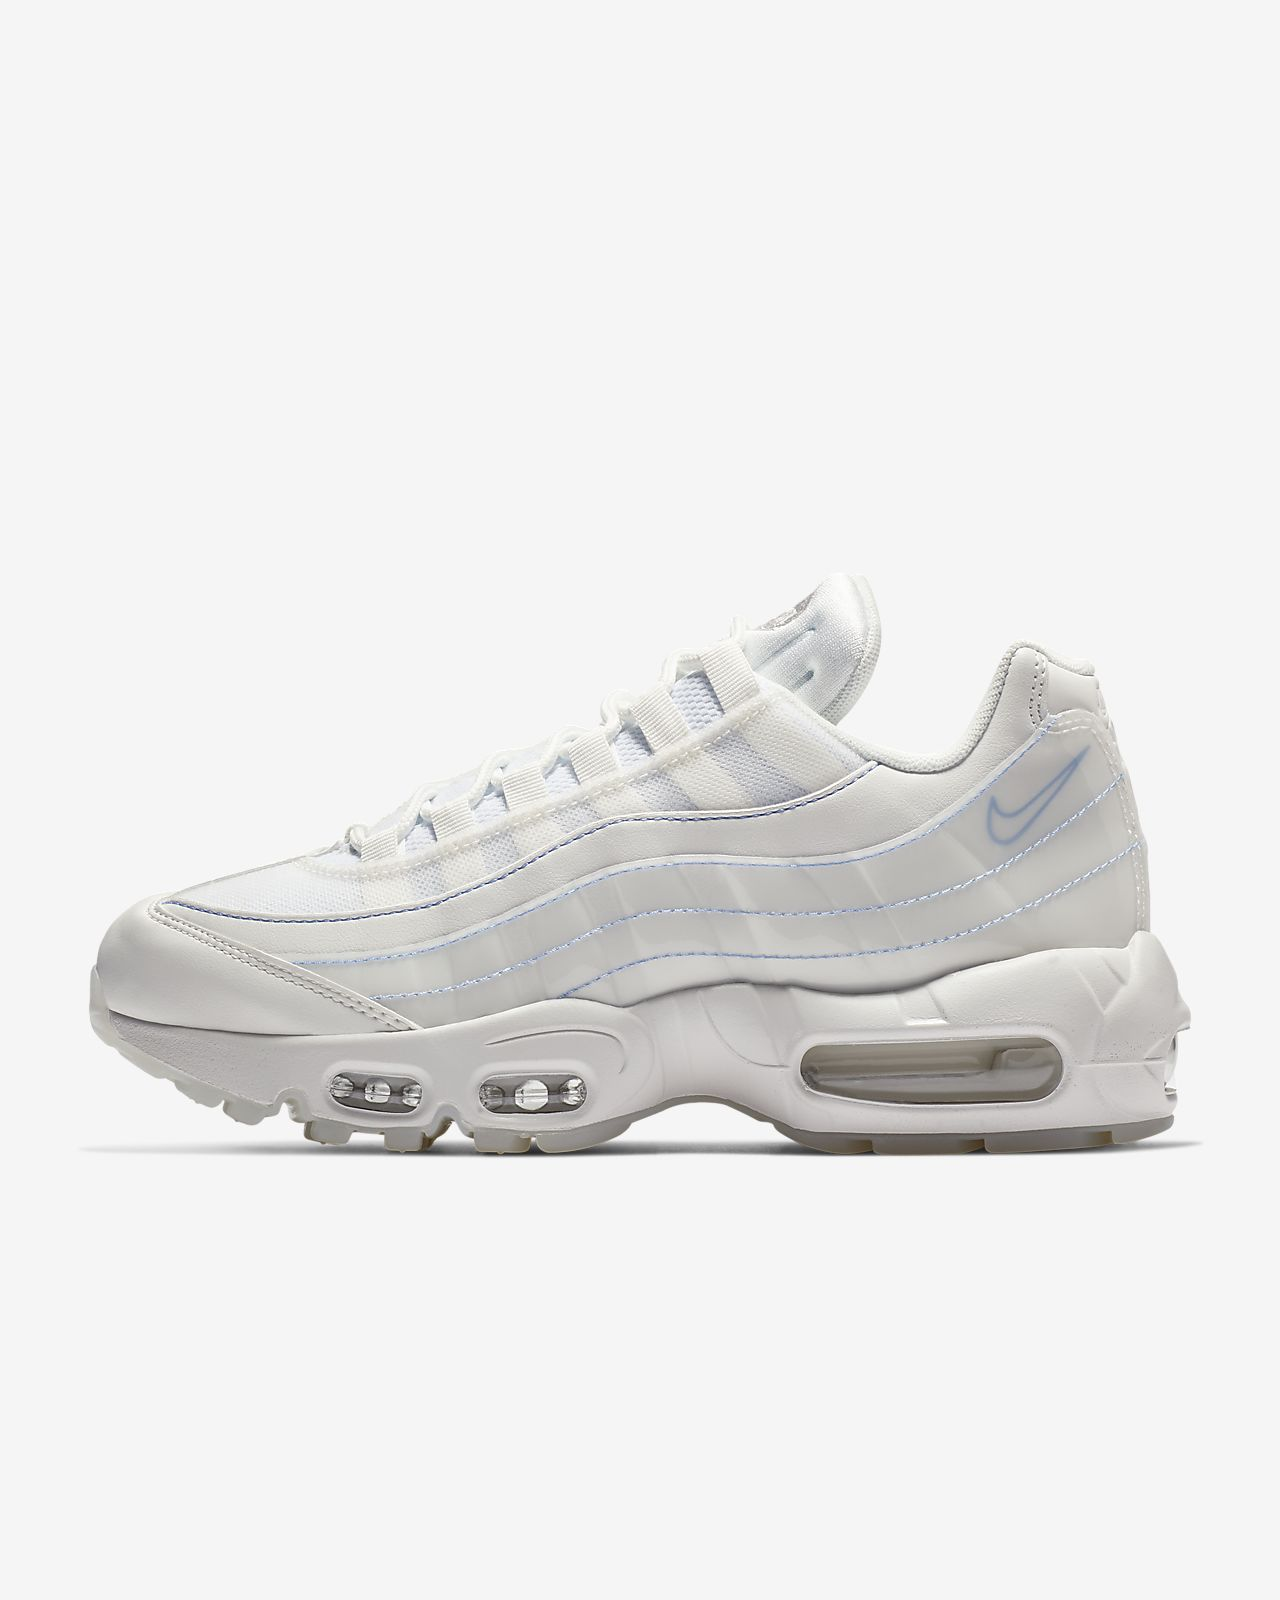 570f41cba05 Nike Air Max 95 SE Women s Shoe. Nike.com